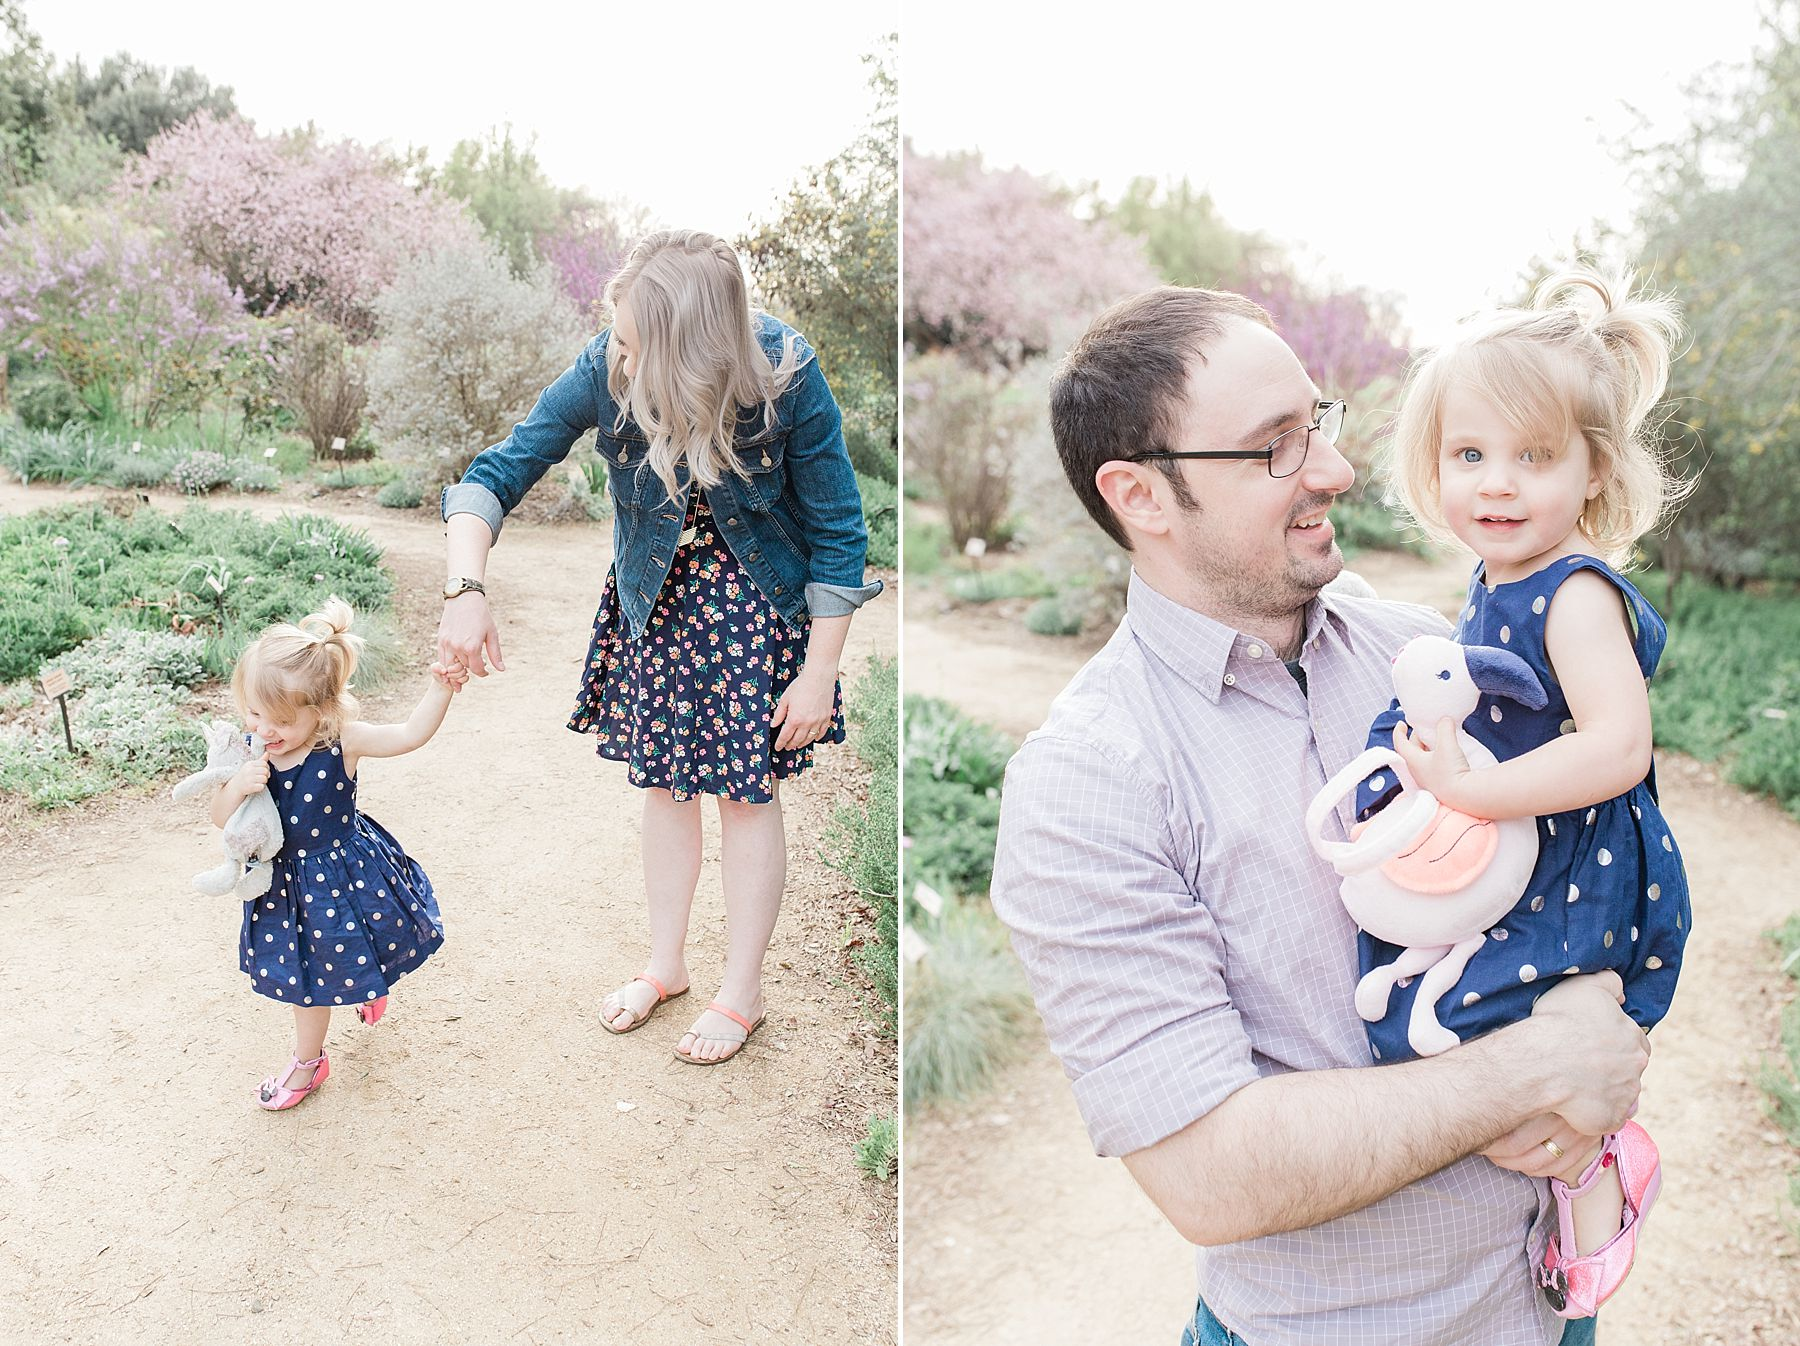 Davis Family Portraits at UC Davis Arboretum - Padovani Family - Ashley Baumgartner - Davis Family Photographer_0016.jpg